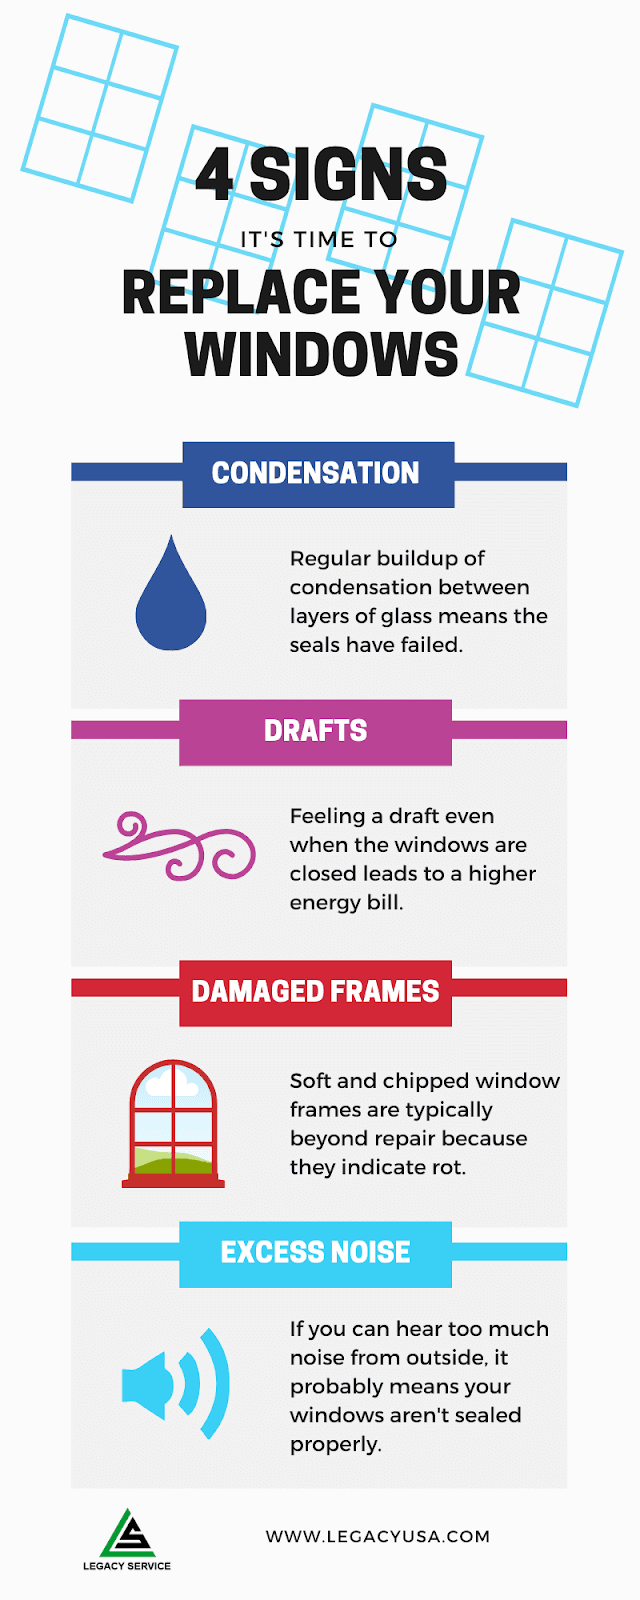 Infographic January 2020: 4 Signs It's Time to Replace Your Windows